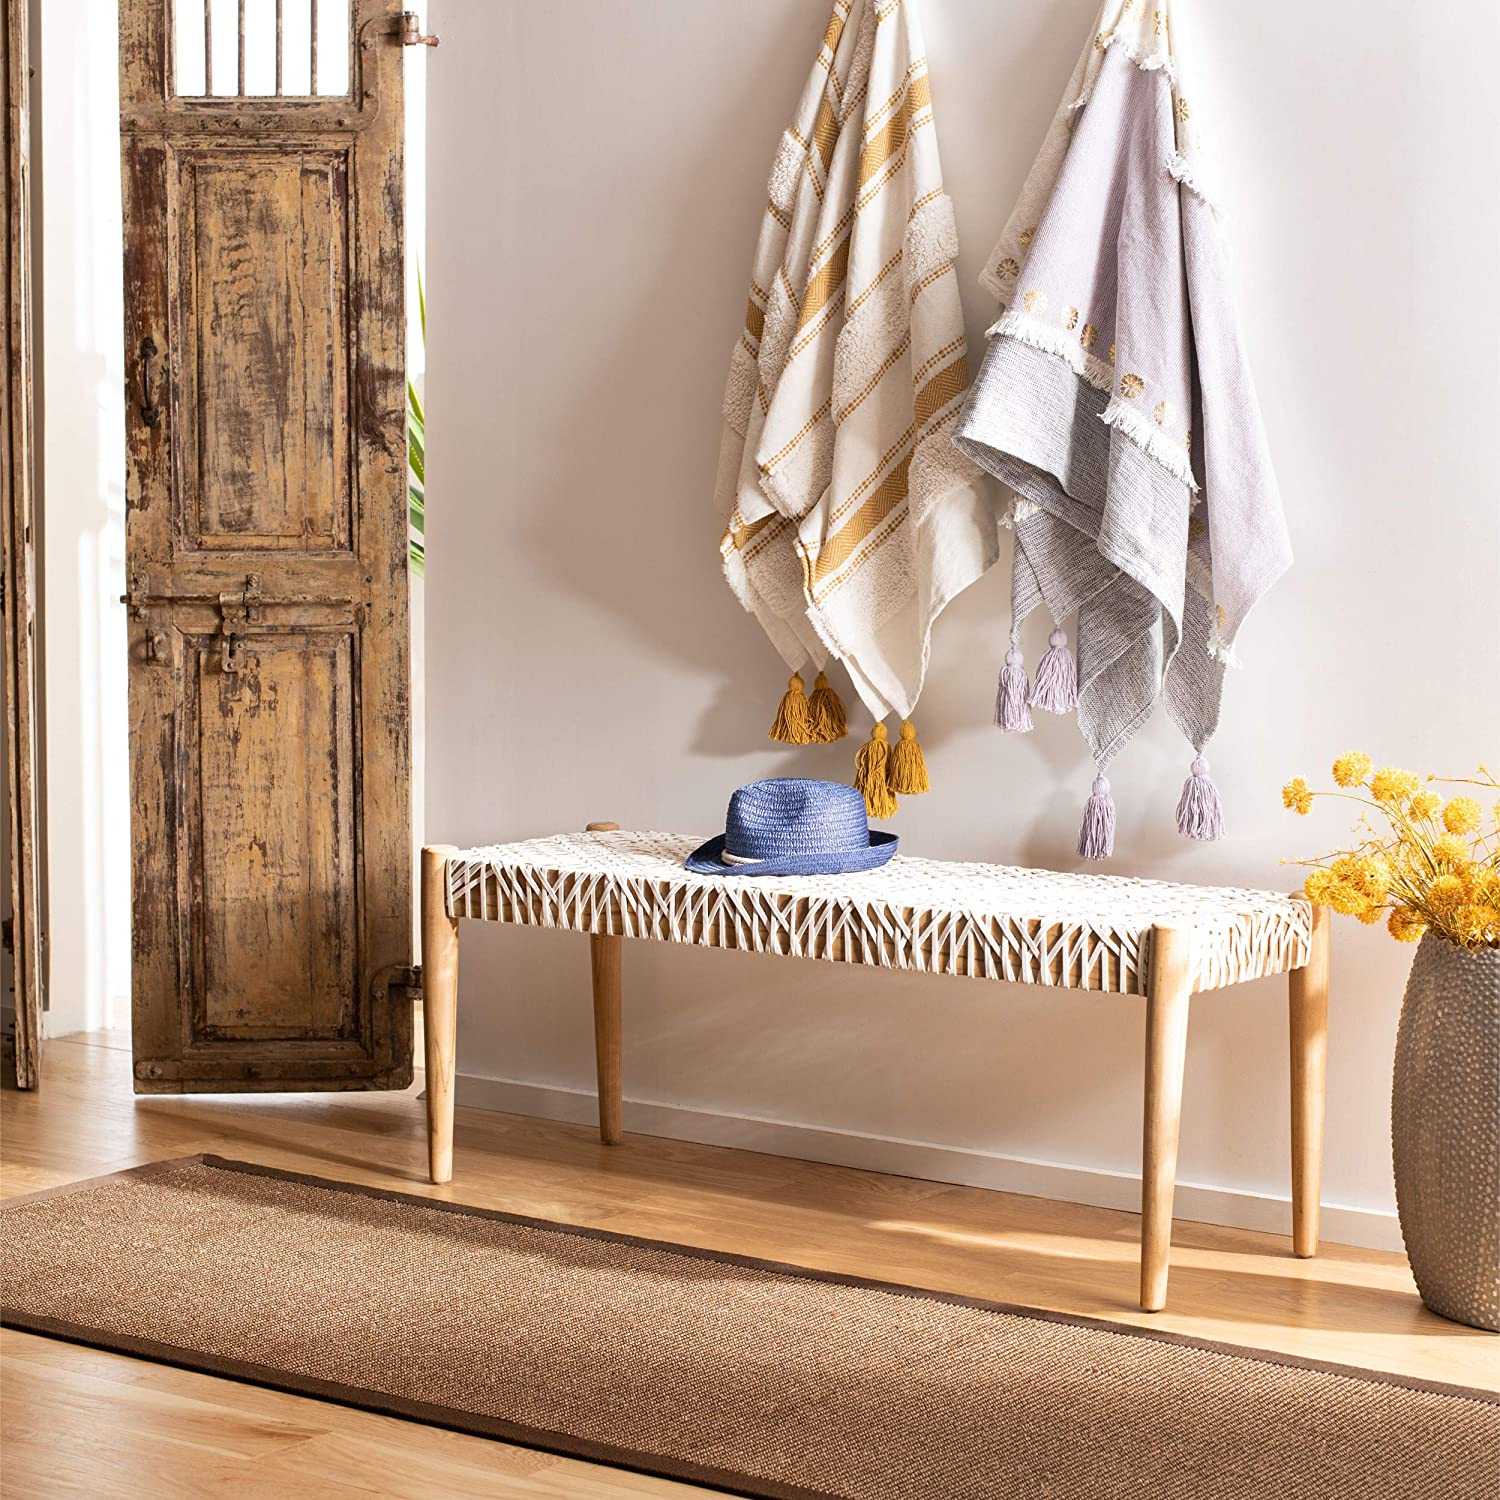 Amazon Com Safavieh Home Bandelier 47 Inch Light Oak And Off White Leather Weave Bench Furniture Decor